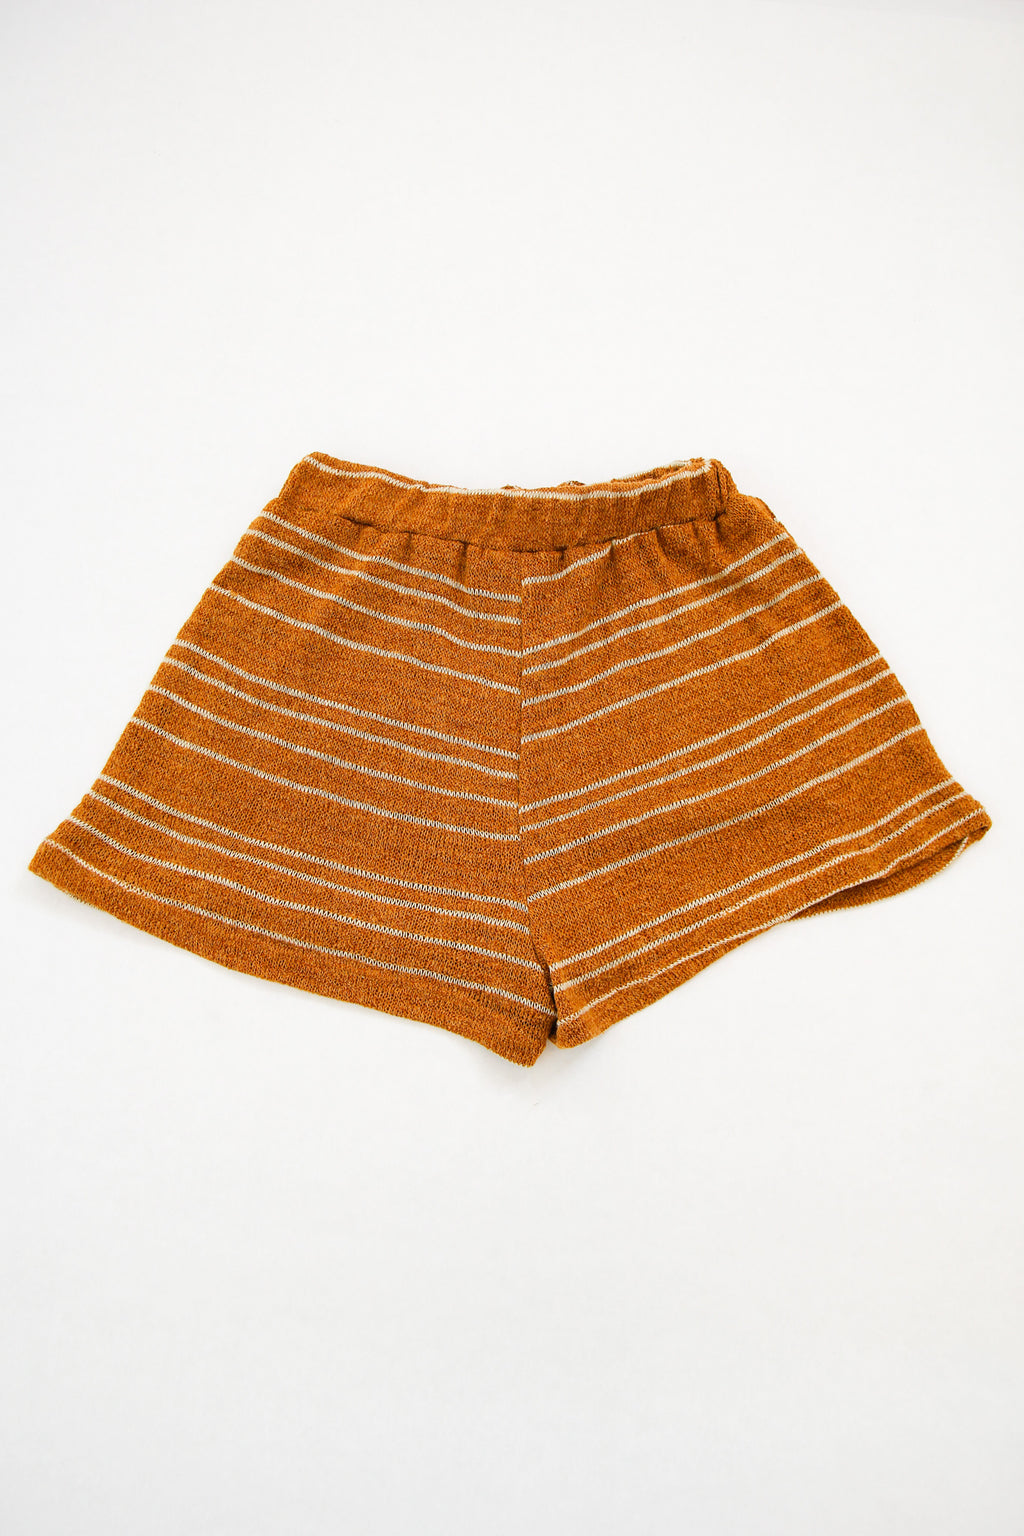 Camel Cozy Knit Shorts